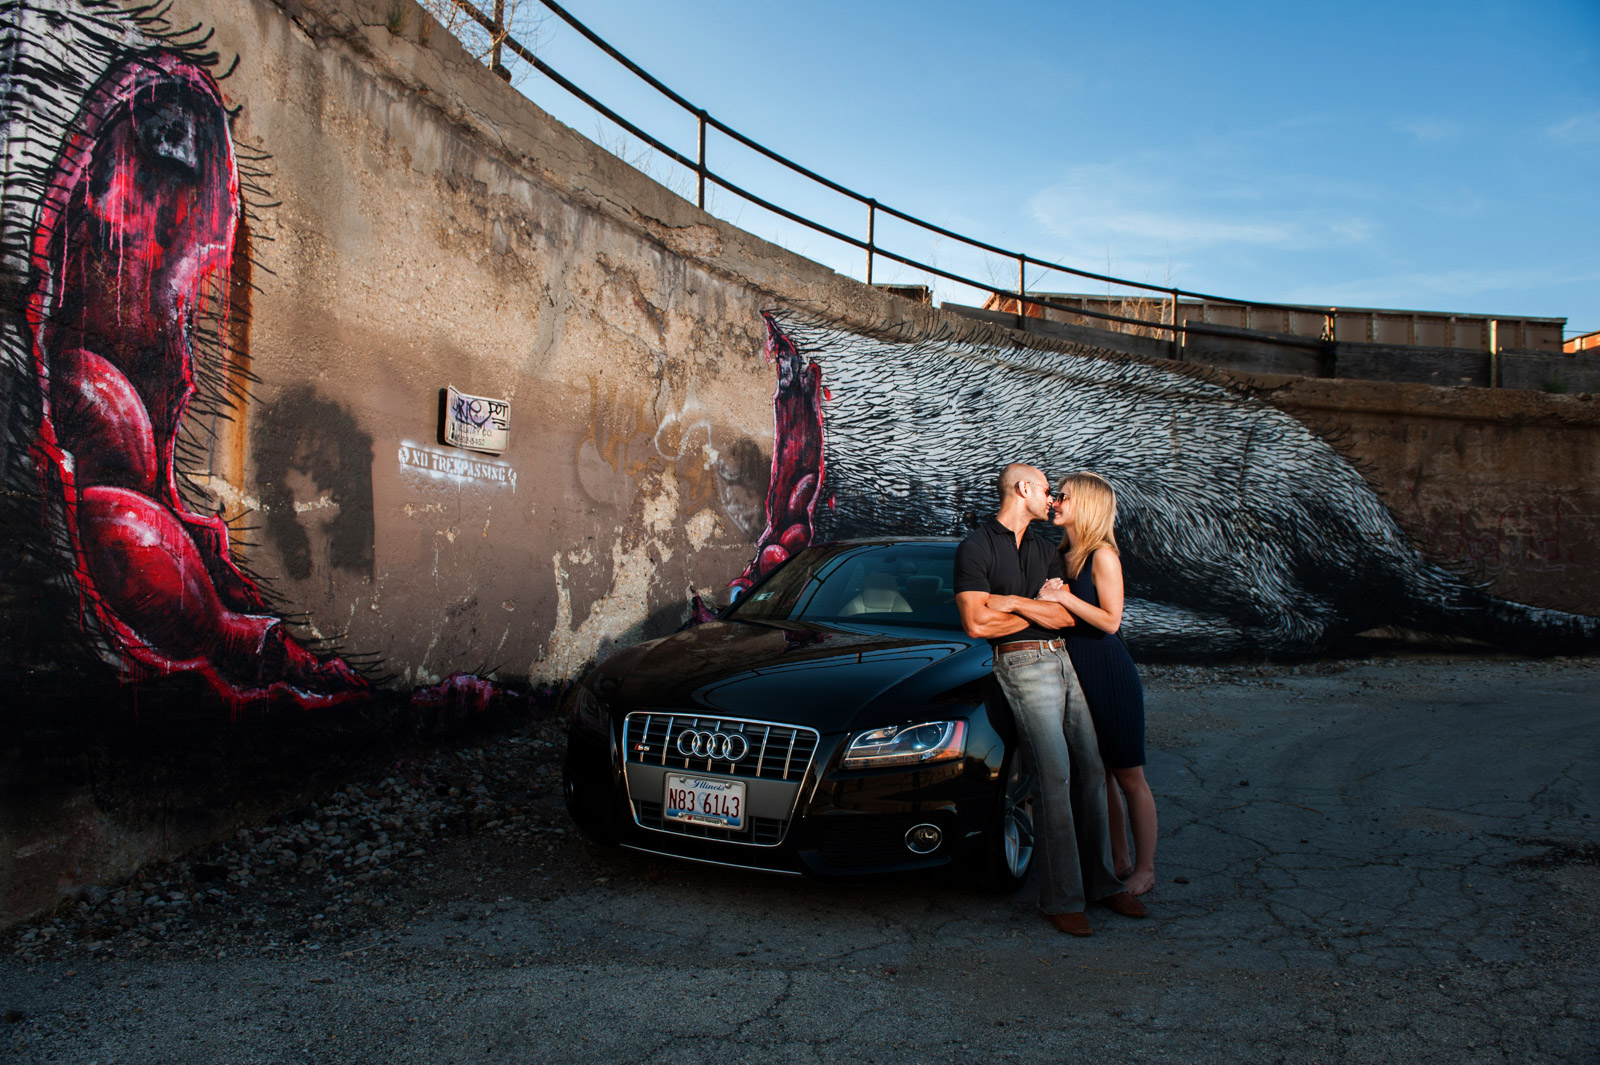 Engagement Session couple photographed in front of their car and urban street art in Pilsen by ROA